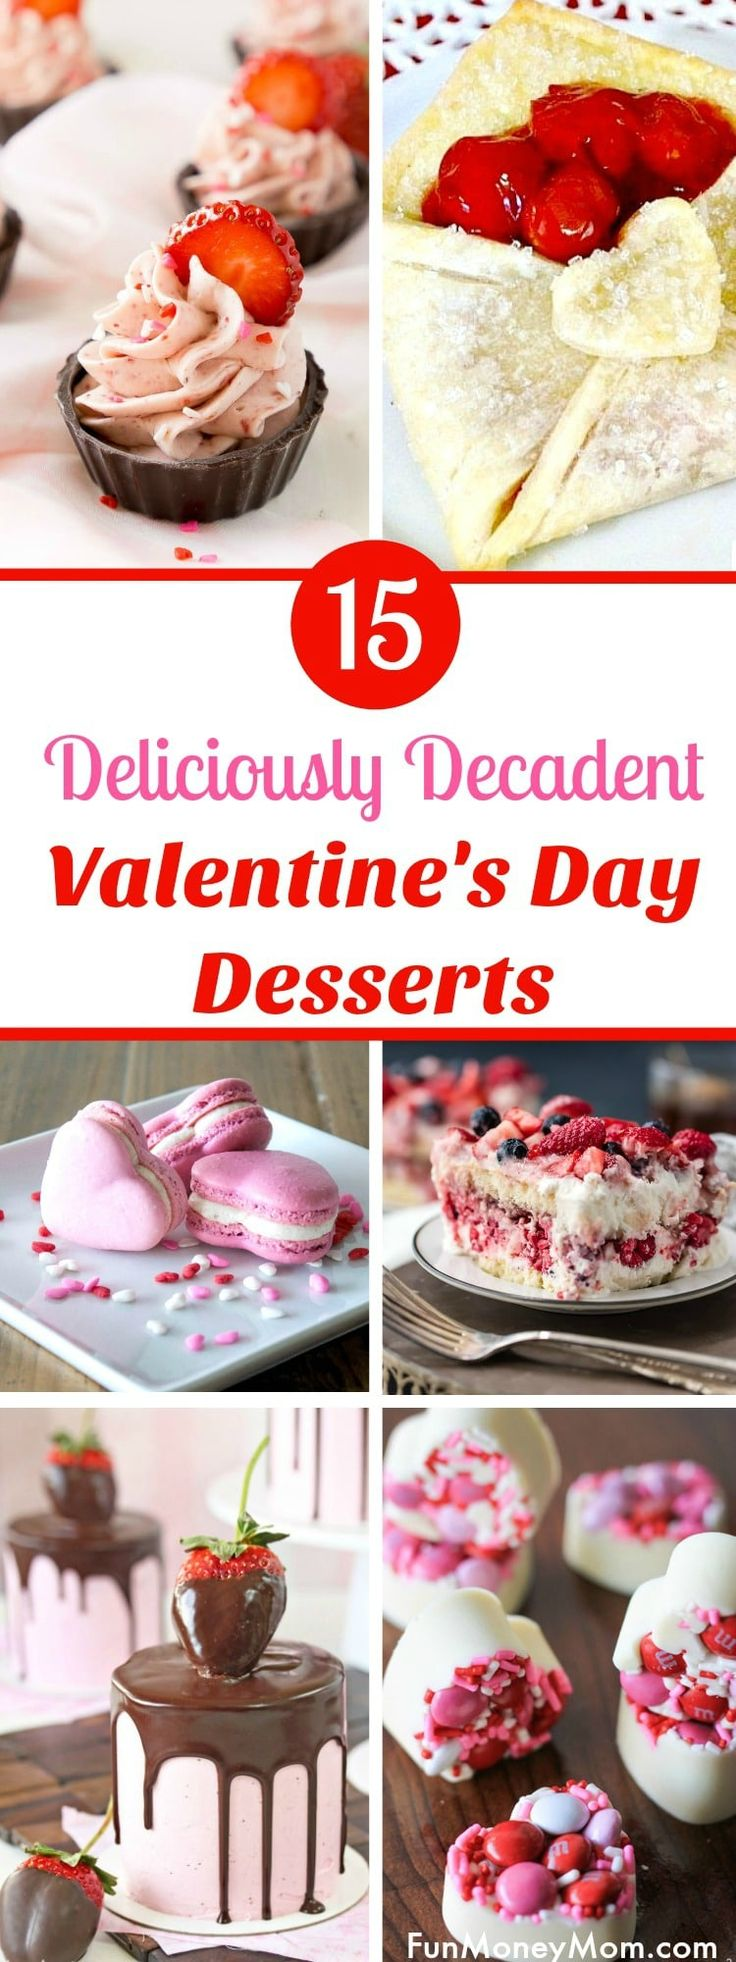 Valentine's Day Desserts - Looking for the perfect Valentine's Day recipes? These Valentine's Desserts are perfect for celebrating. From chocolate hearts to Valentine's Day cakes, you'll love these awesome Valentine's day recipes! #valentinesday #valentinesdaydesserts #desserts